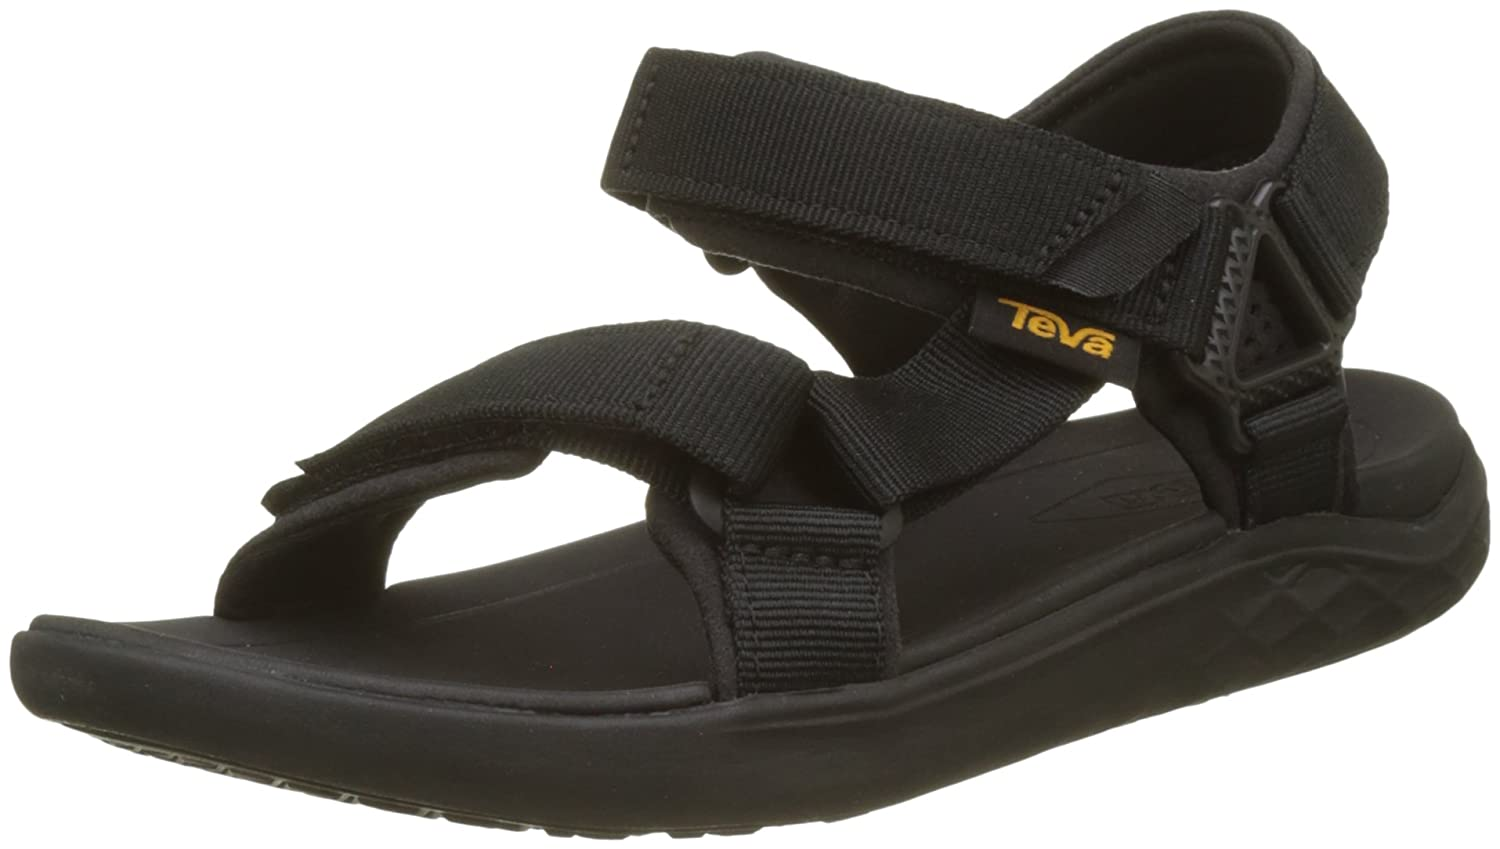 2f3da2bdaa2dd Teva Women s Terra-Float 2 Universal Sports and Outdoor Lifestyle Sandal   Amazon.co.uk  Shoes   Bags